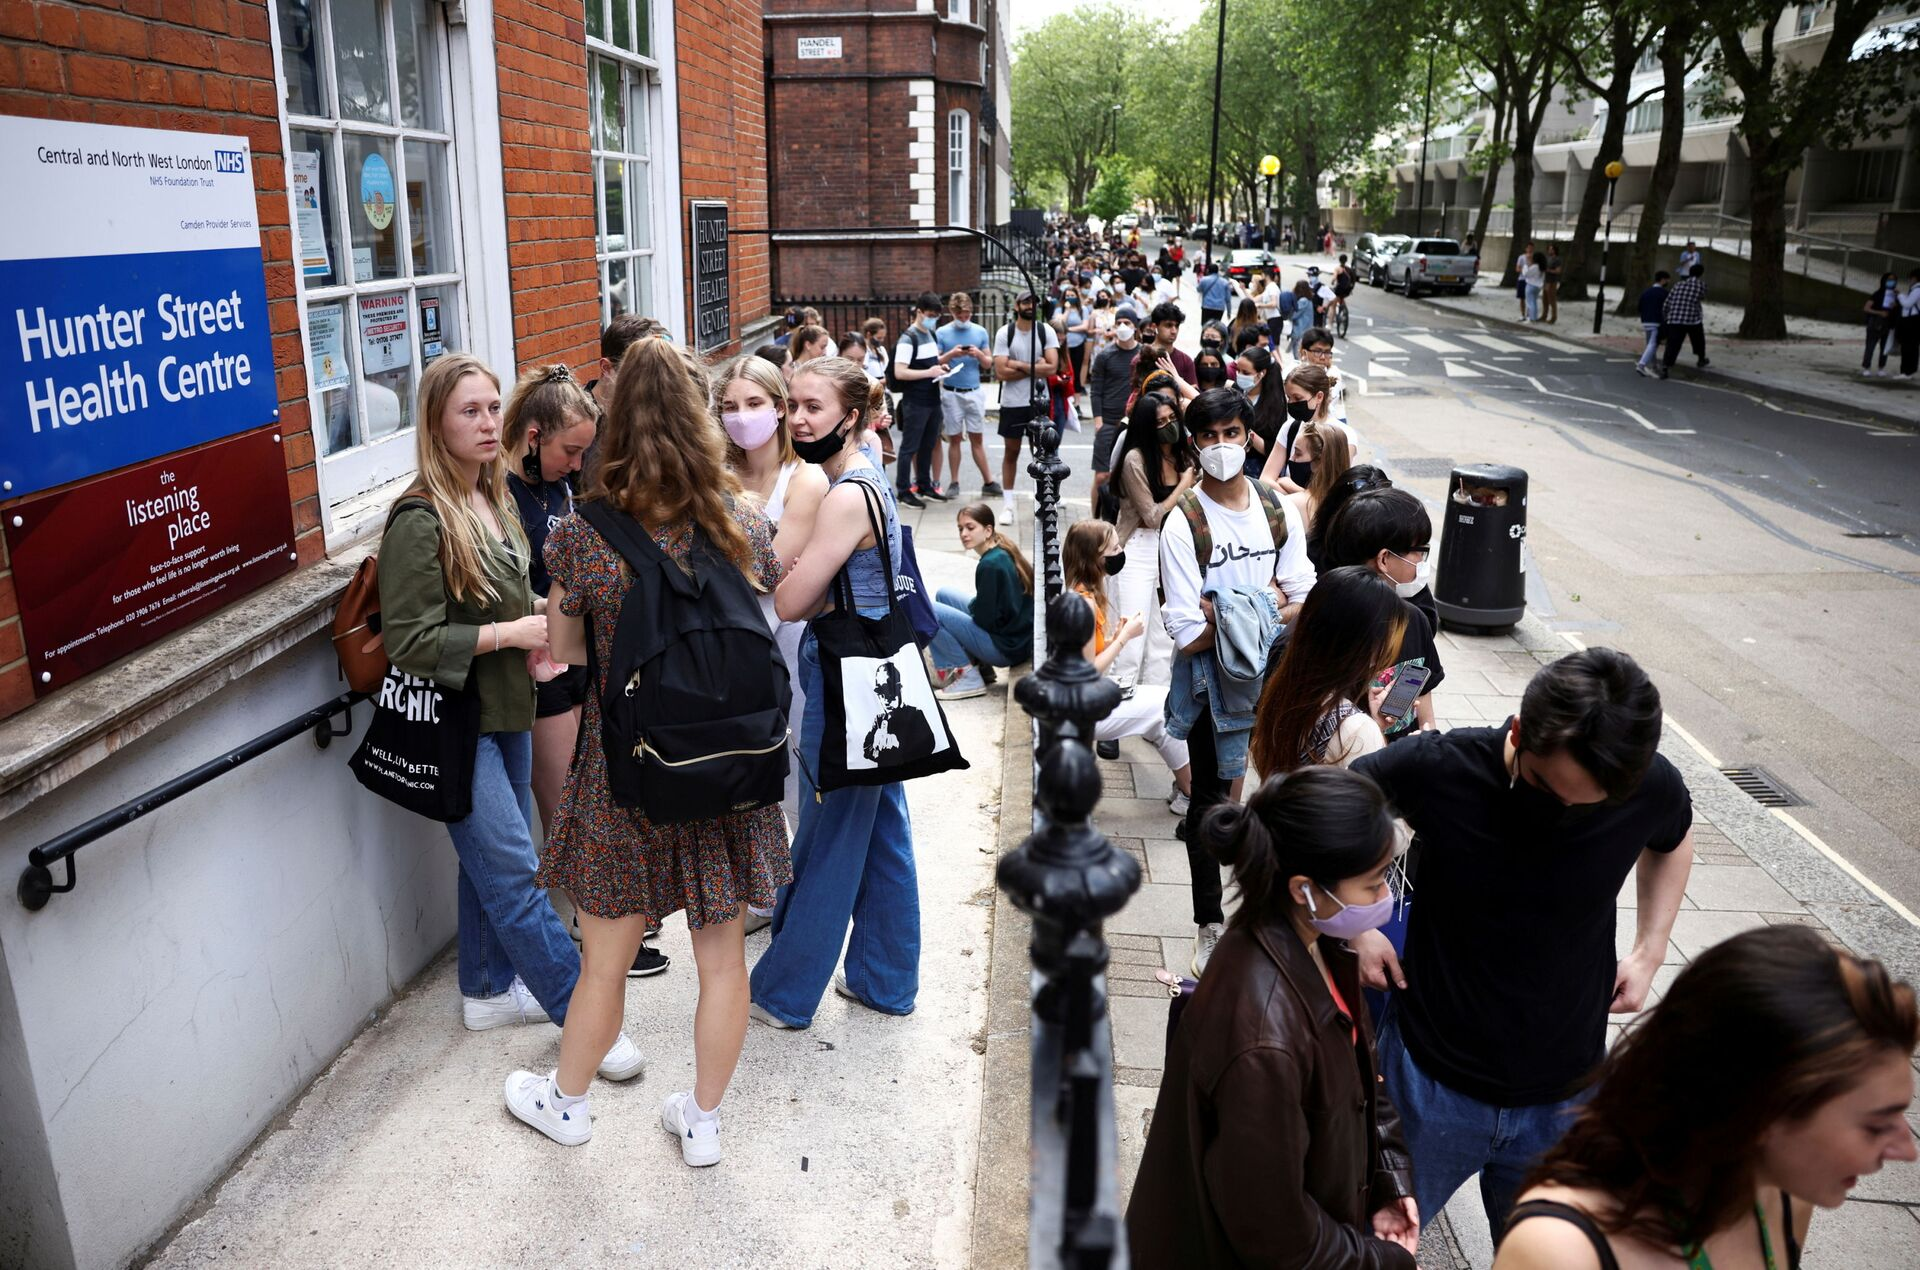 FILE PHOTO: People queue outside a vaccination centre for young people and students at the Hunter Street Health Centre, amid the coronavirus disease (COVID-19) outbreak, in London, Britain, June 5, 2021 - Sputnik International, 1920, 07.09.2021